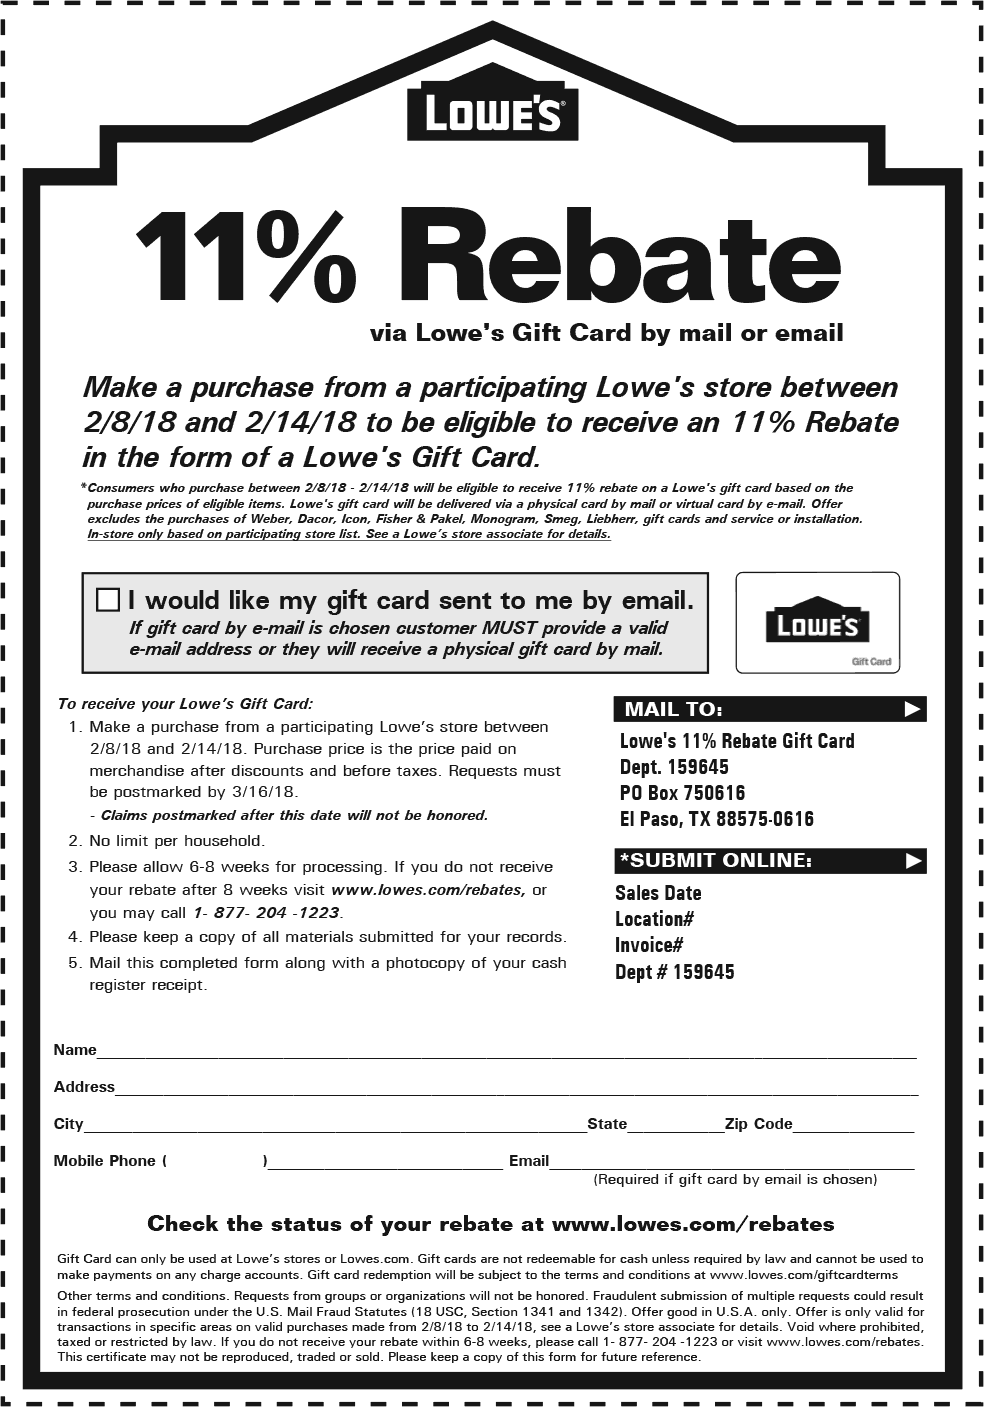 Lowes.com Promo Coupon 11% rebate on purchases made thru the 14th at Lowes